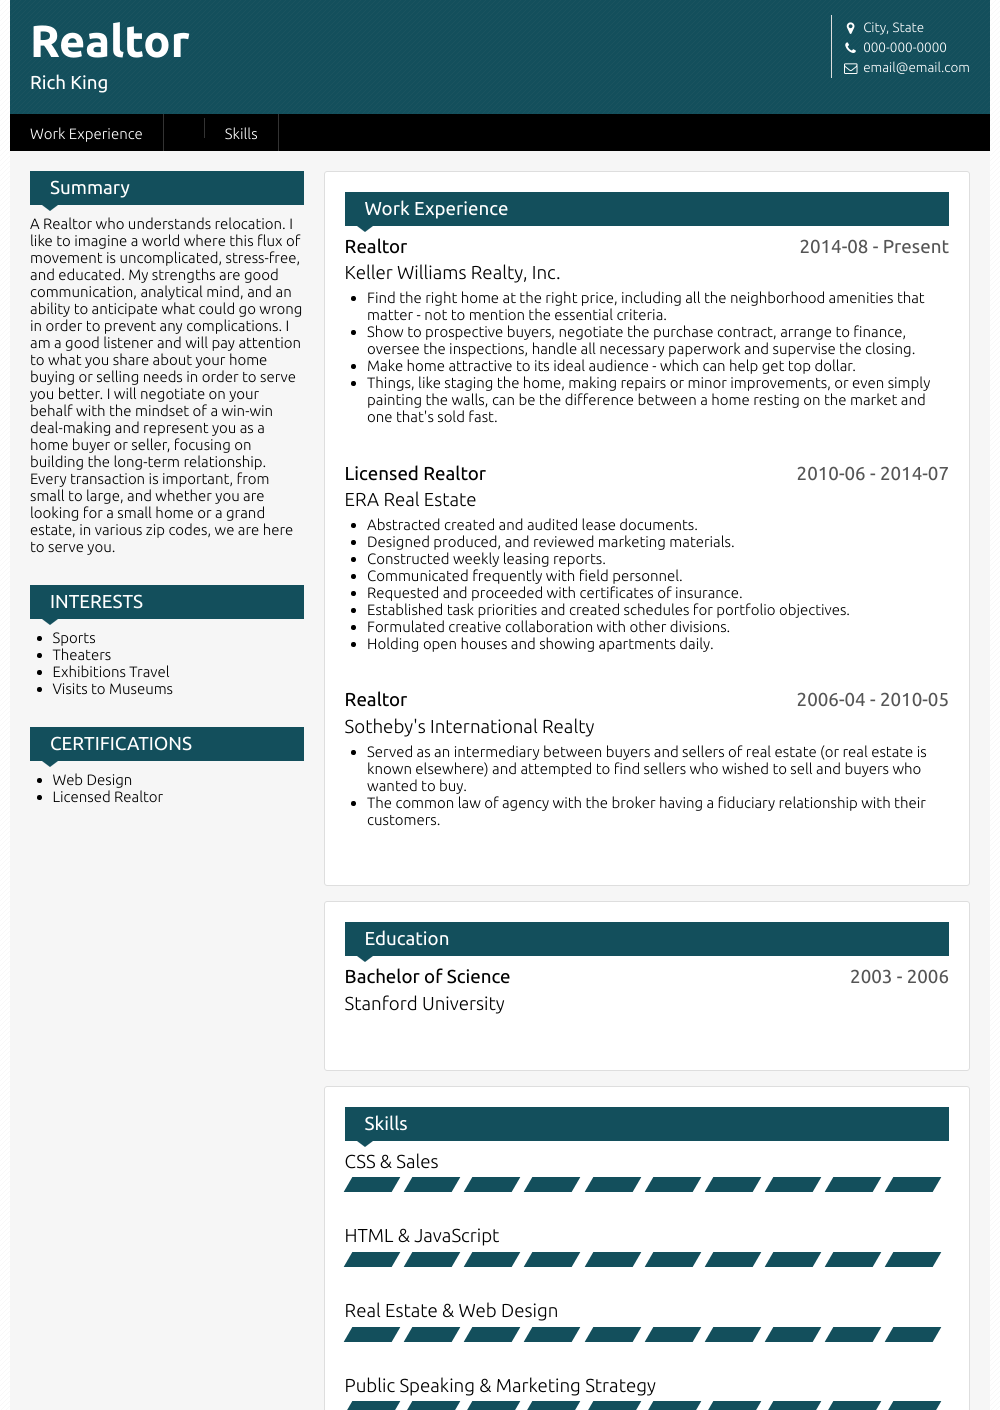 Realtor  Resume Samples and Templates   VisualCV